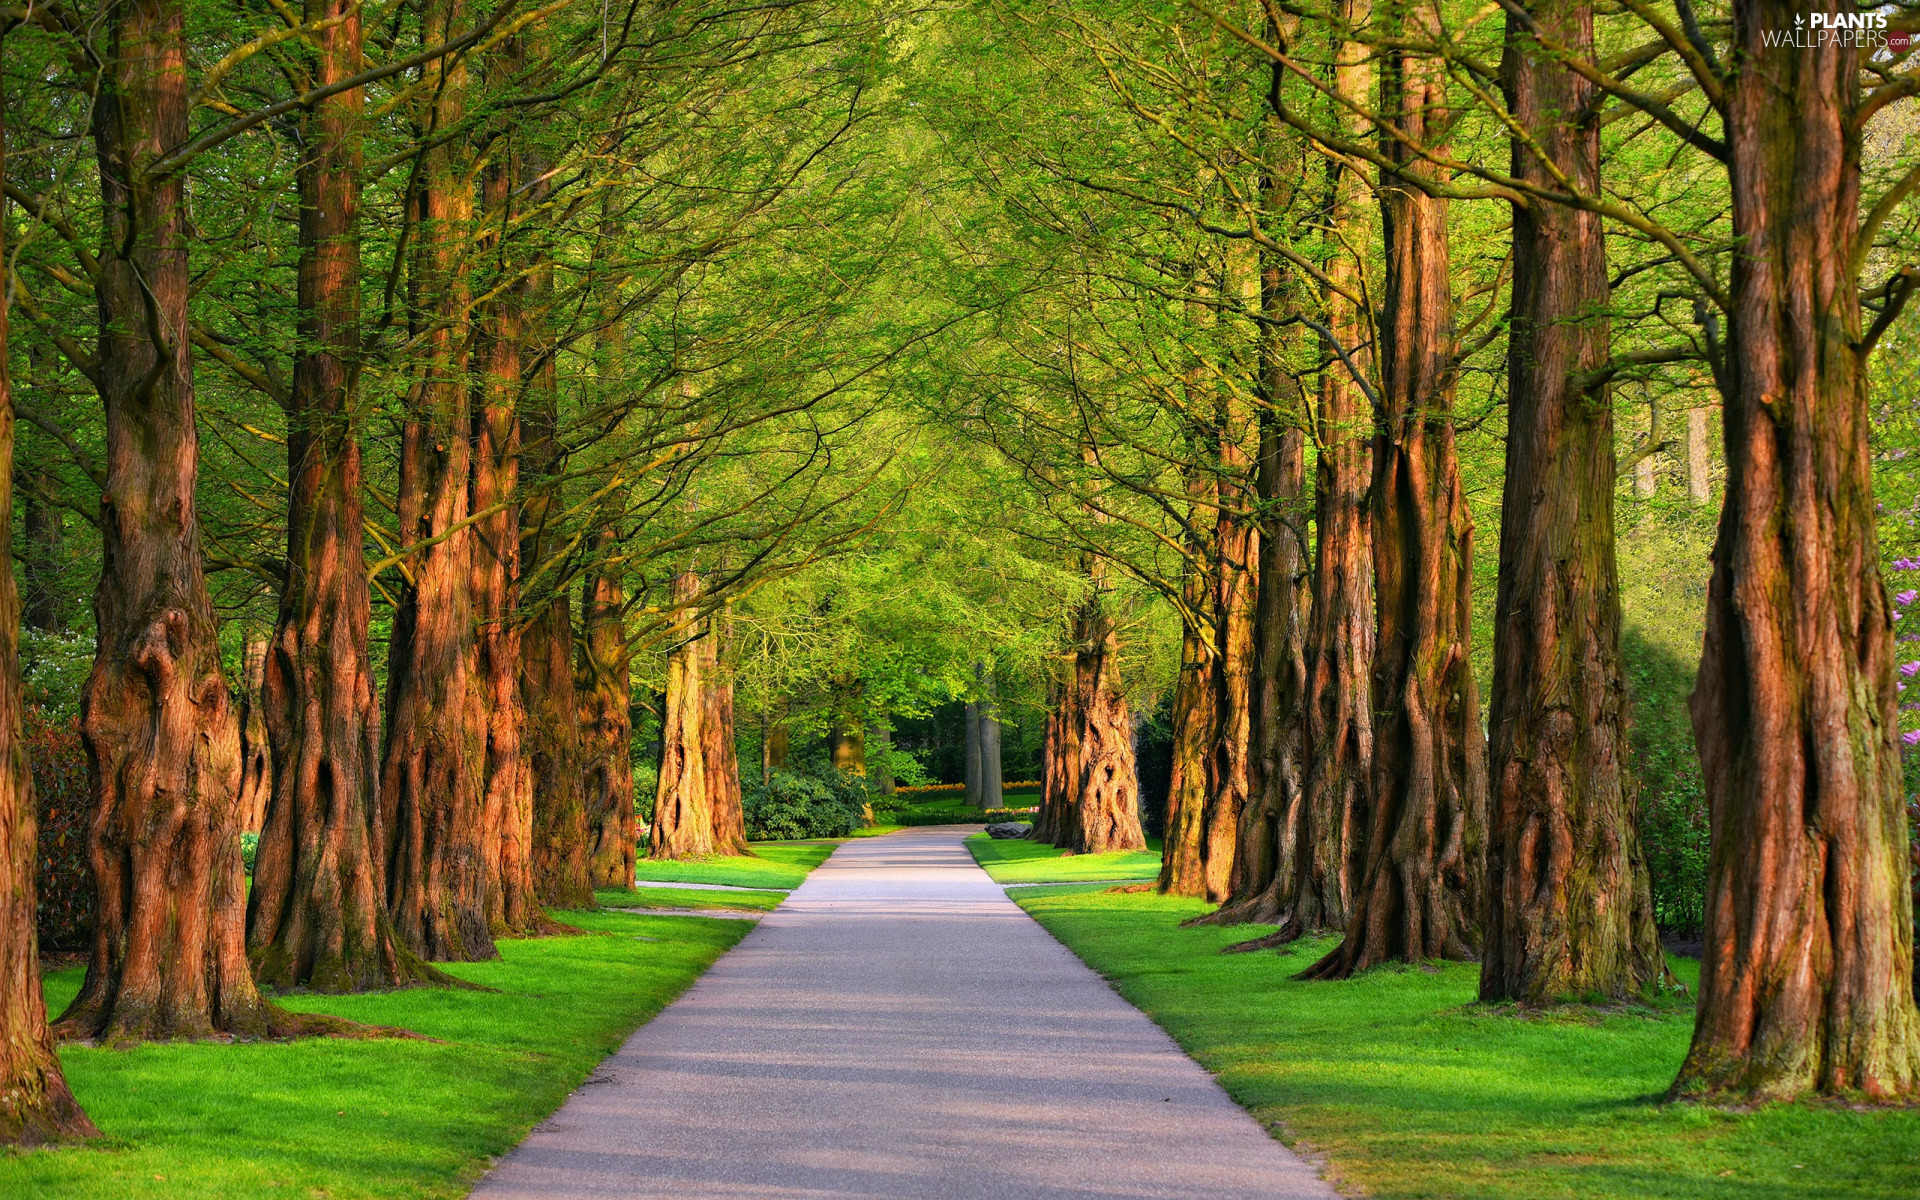 trees, summer, grass, Avenues, Park, viewes, lane